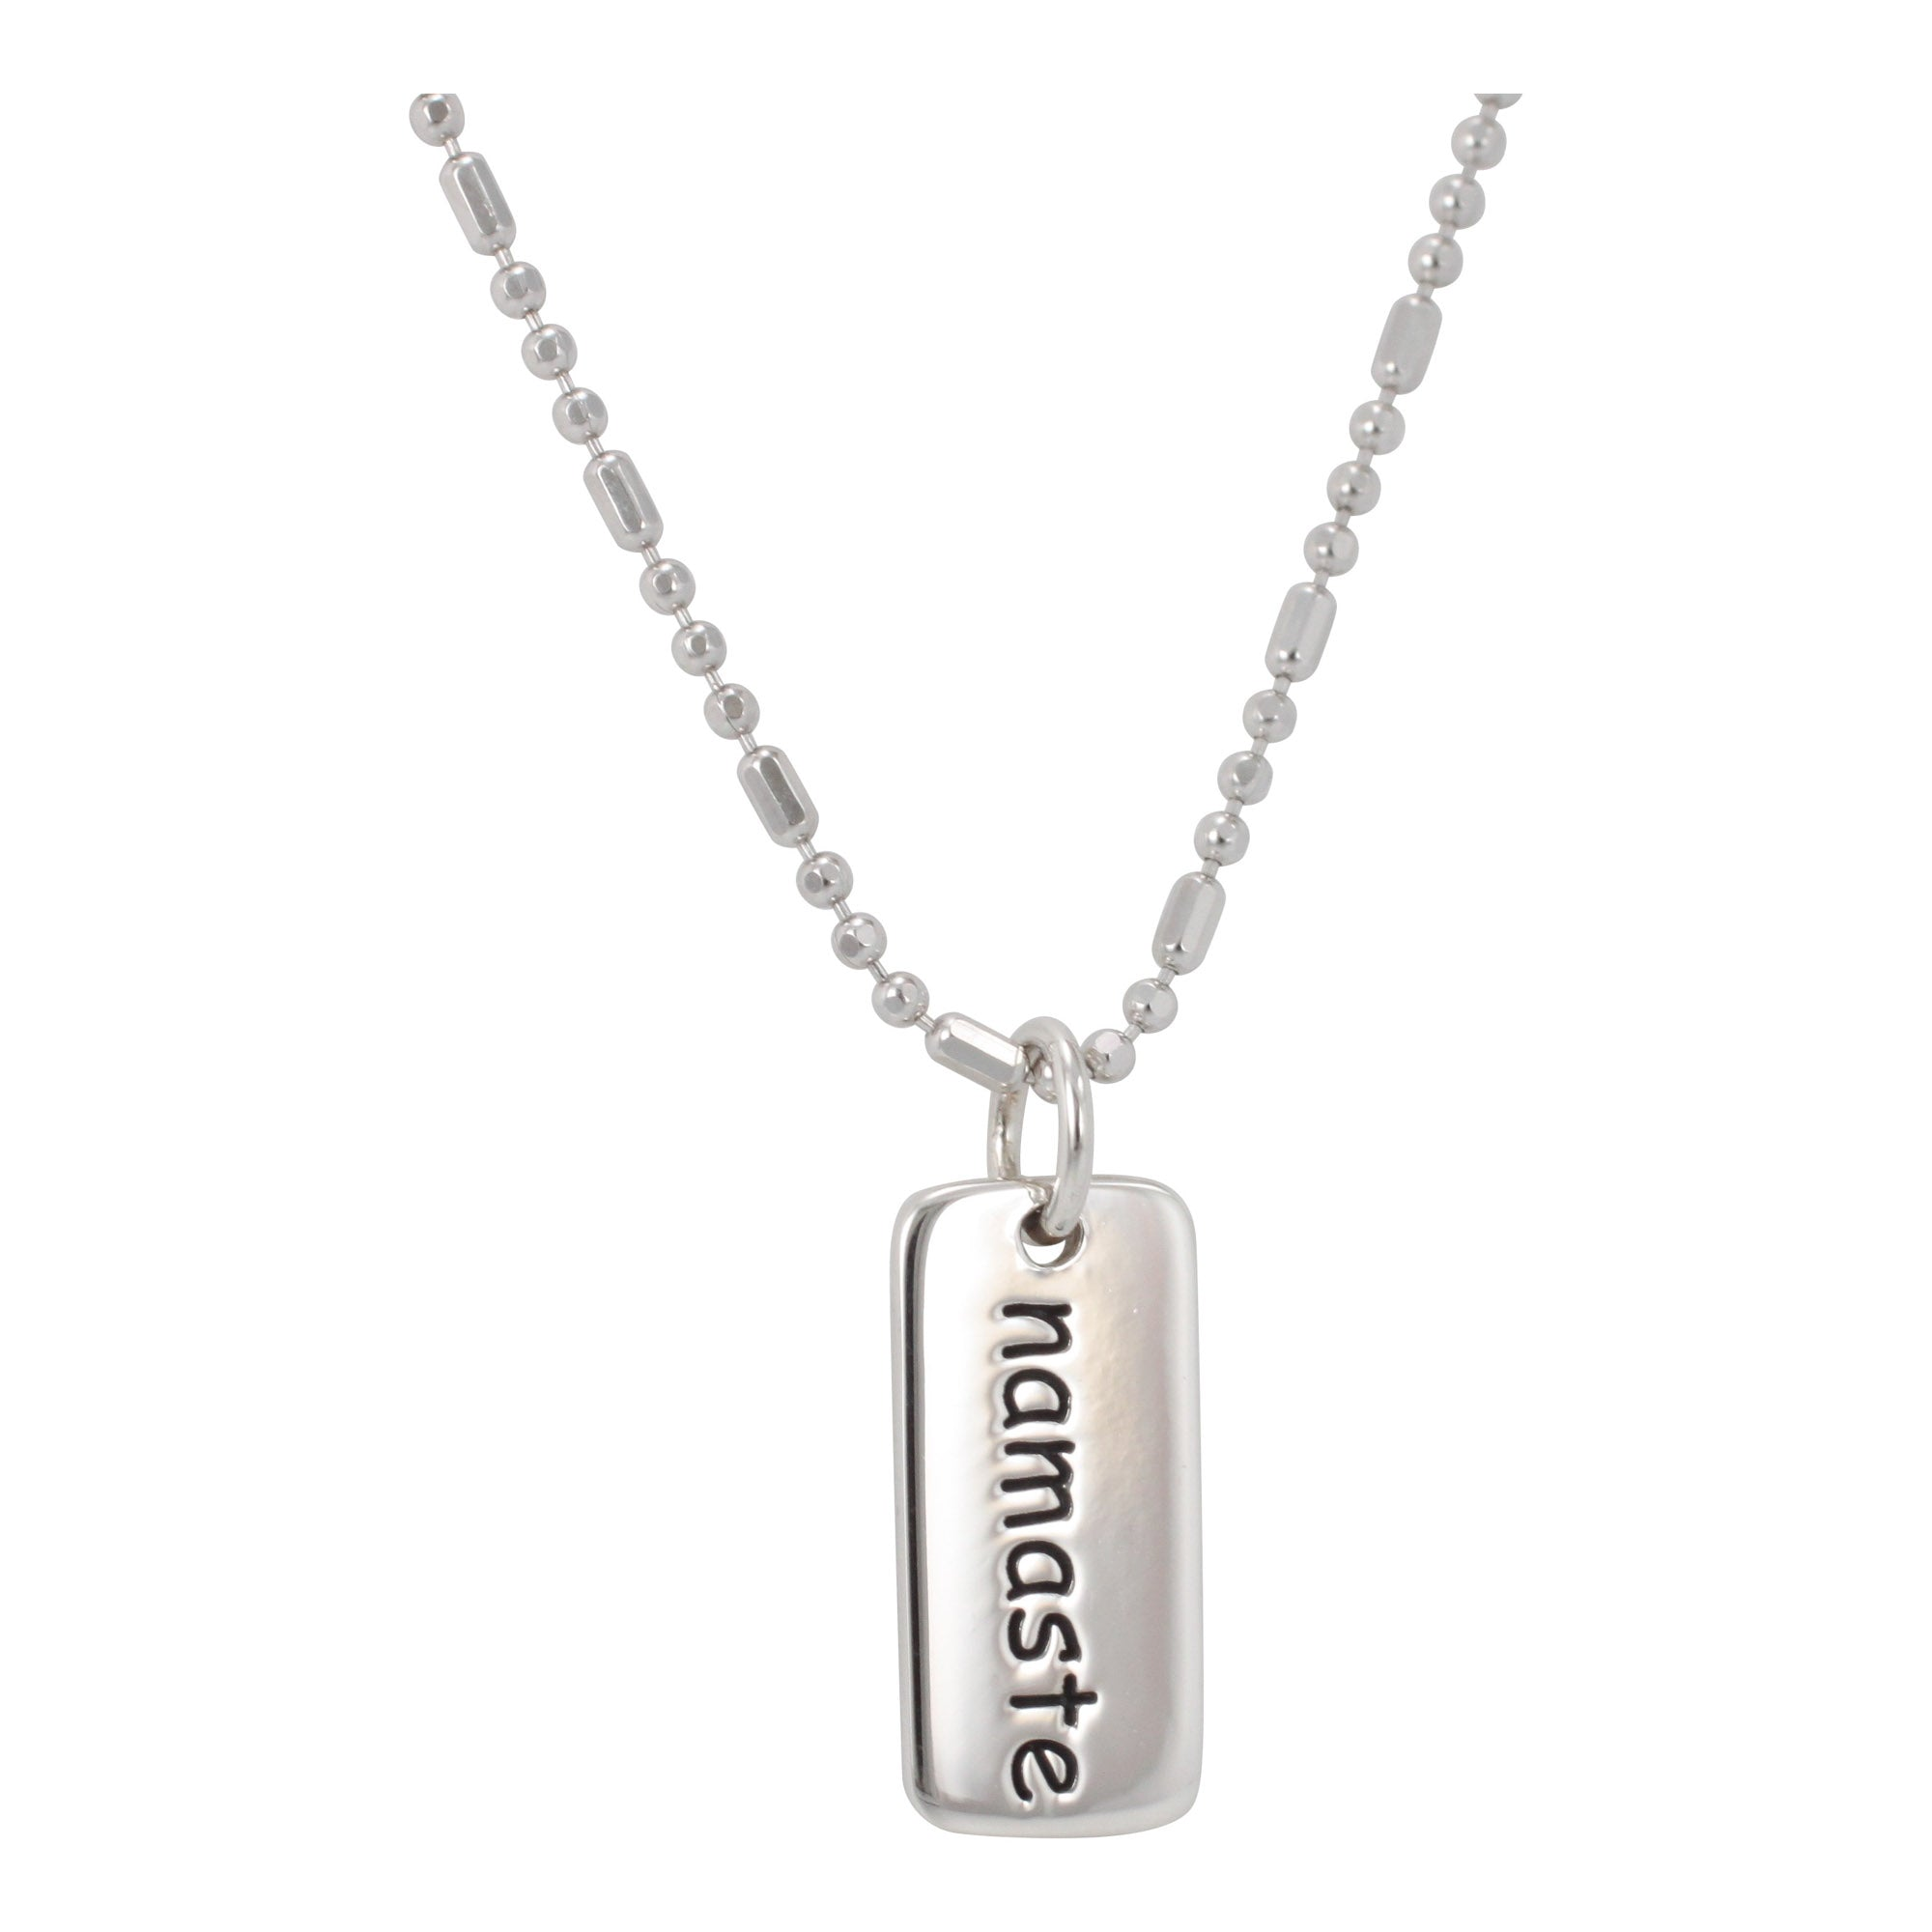 studios bg products necklace shine jewelry meaningful bezel white on diamond stylish now the